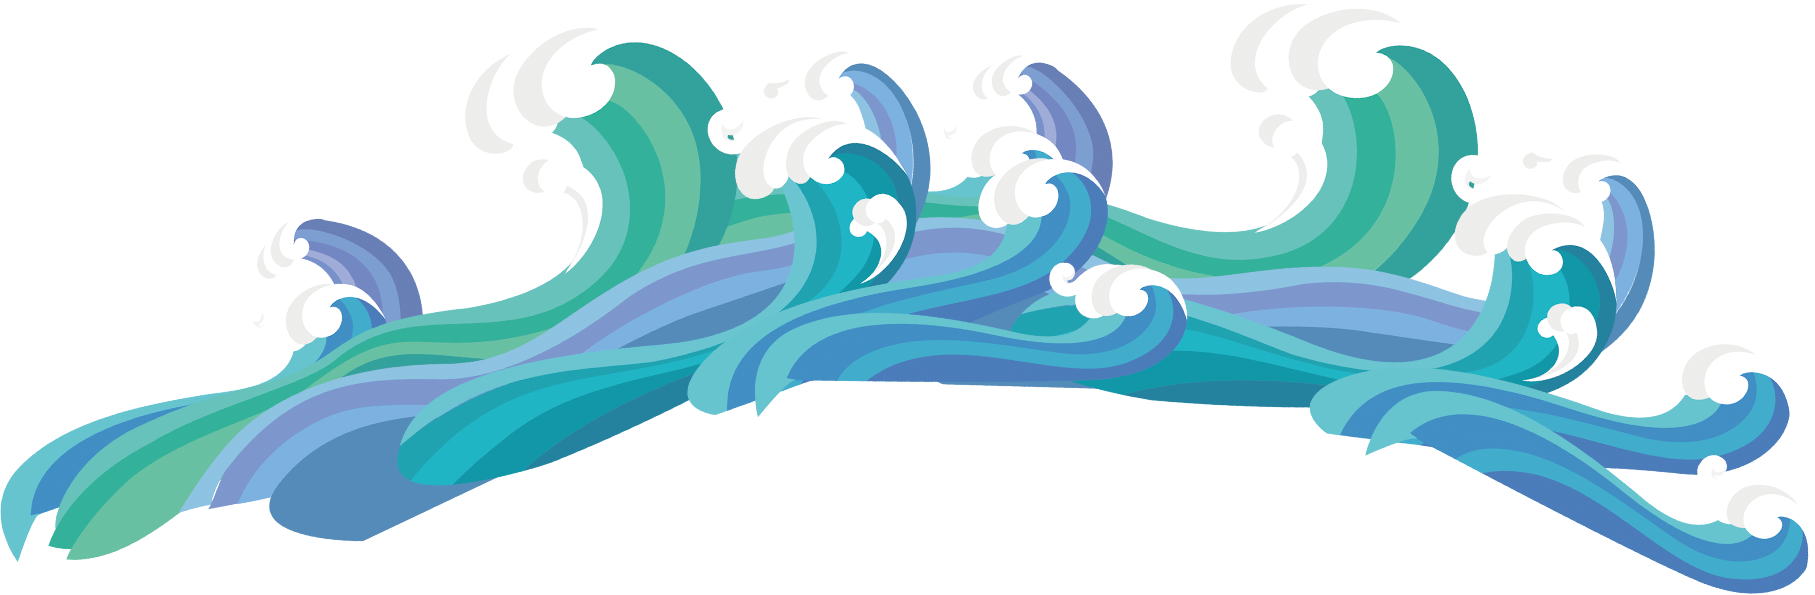 Wind transprent png free. Clipart wave wave drawing